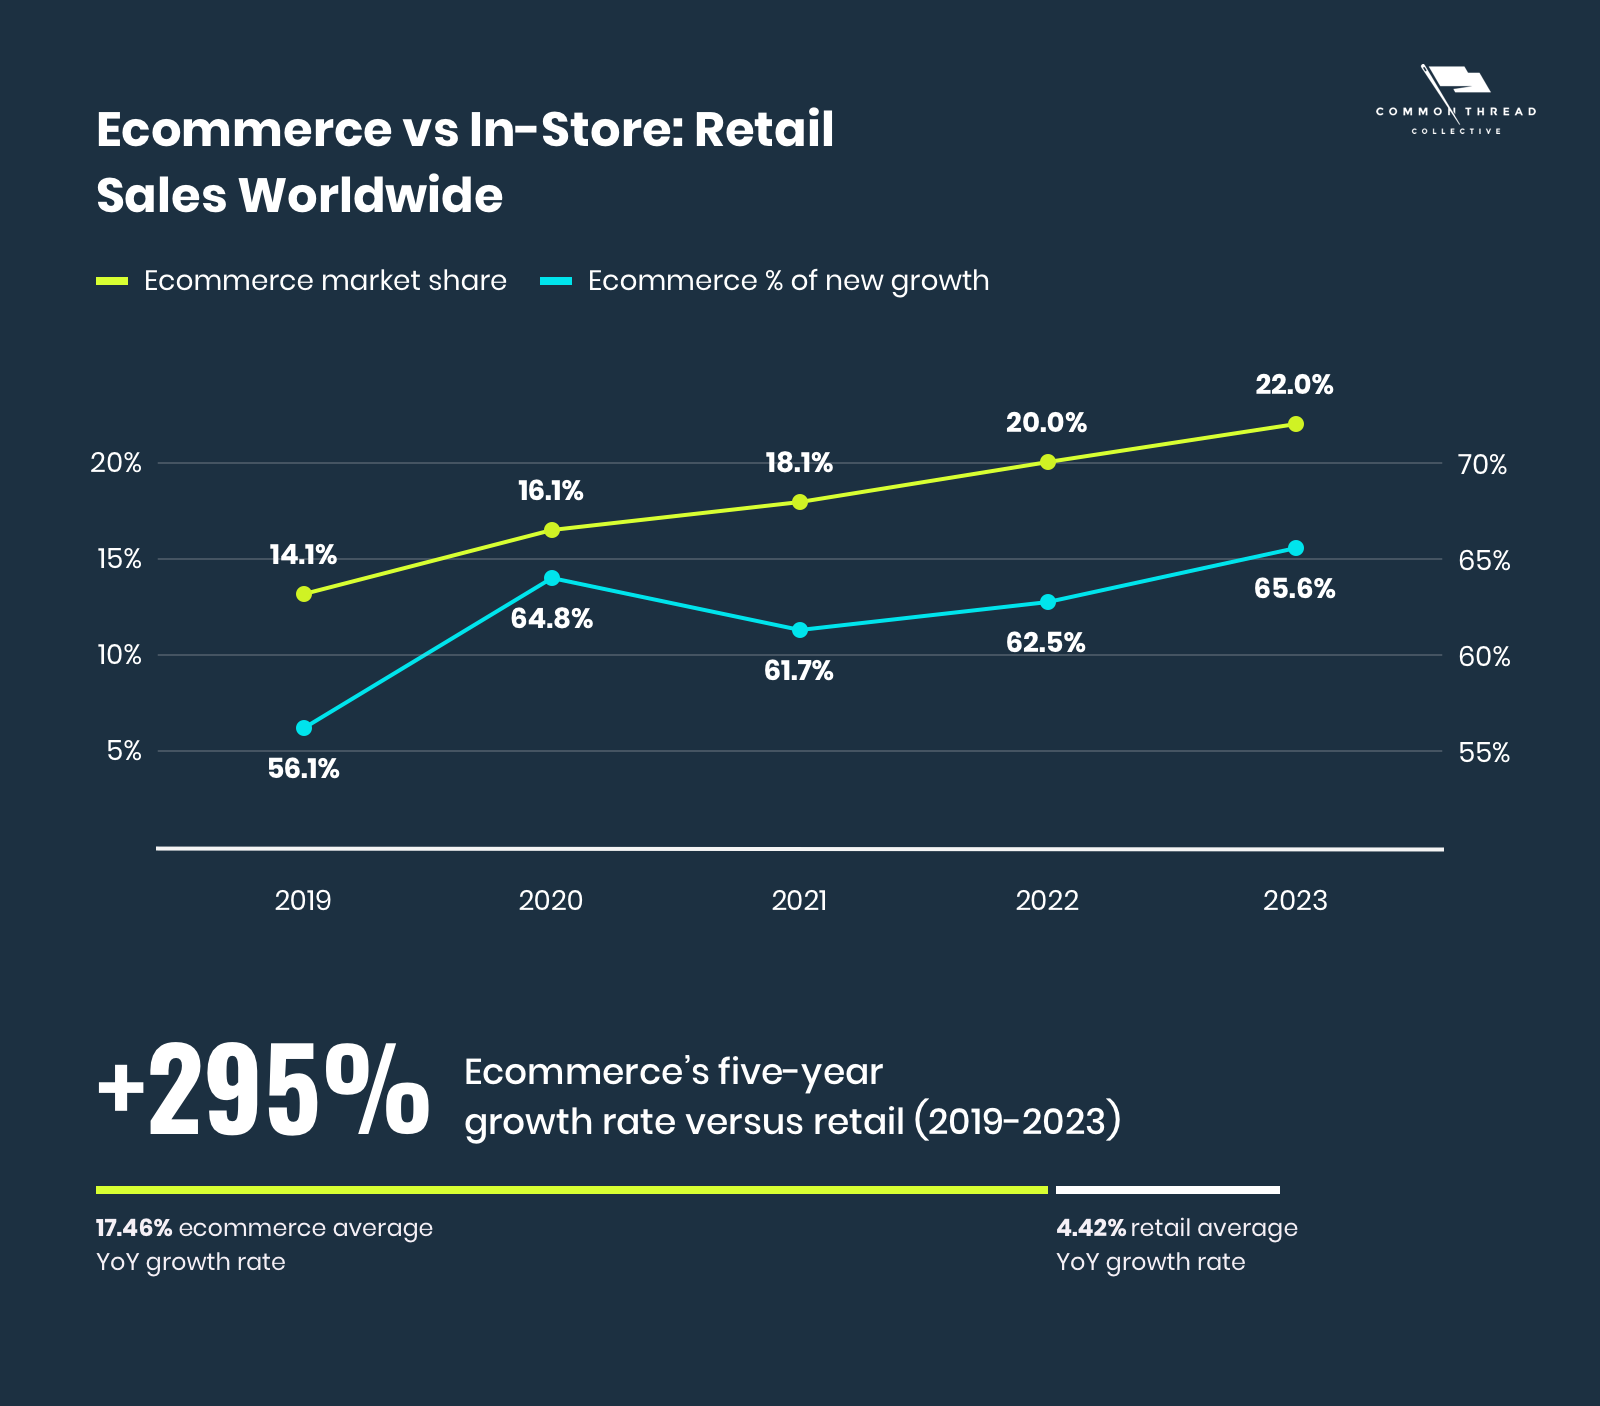 Ecommerce sales data versus retail in-store data